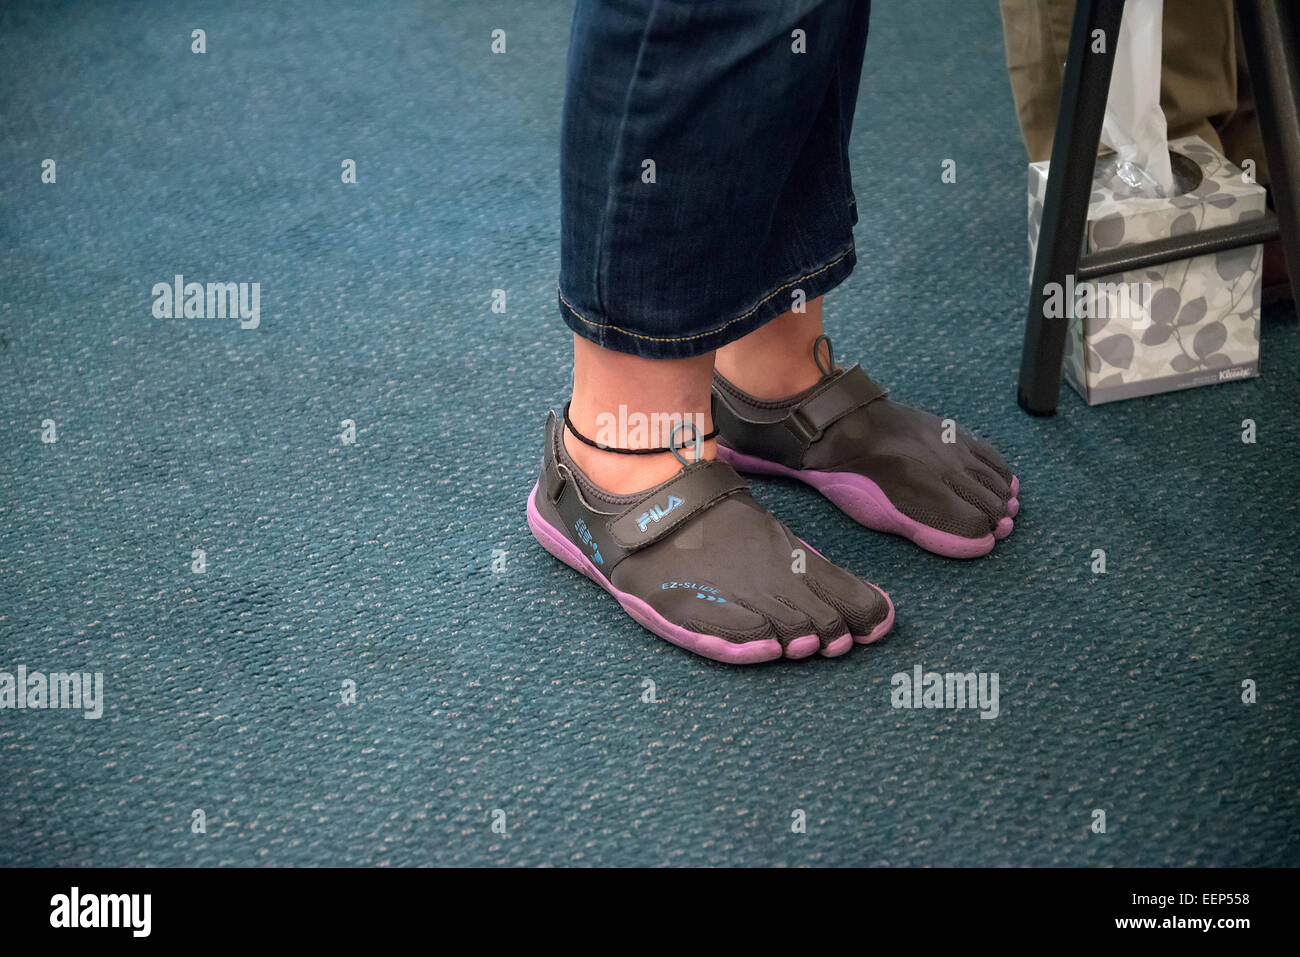 Barefoot Shoes Stock Photos Barefoot Shoes Stock Images